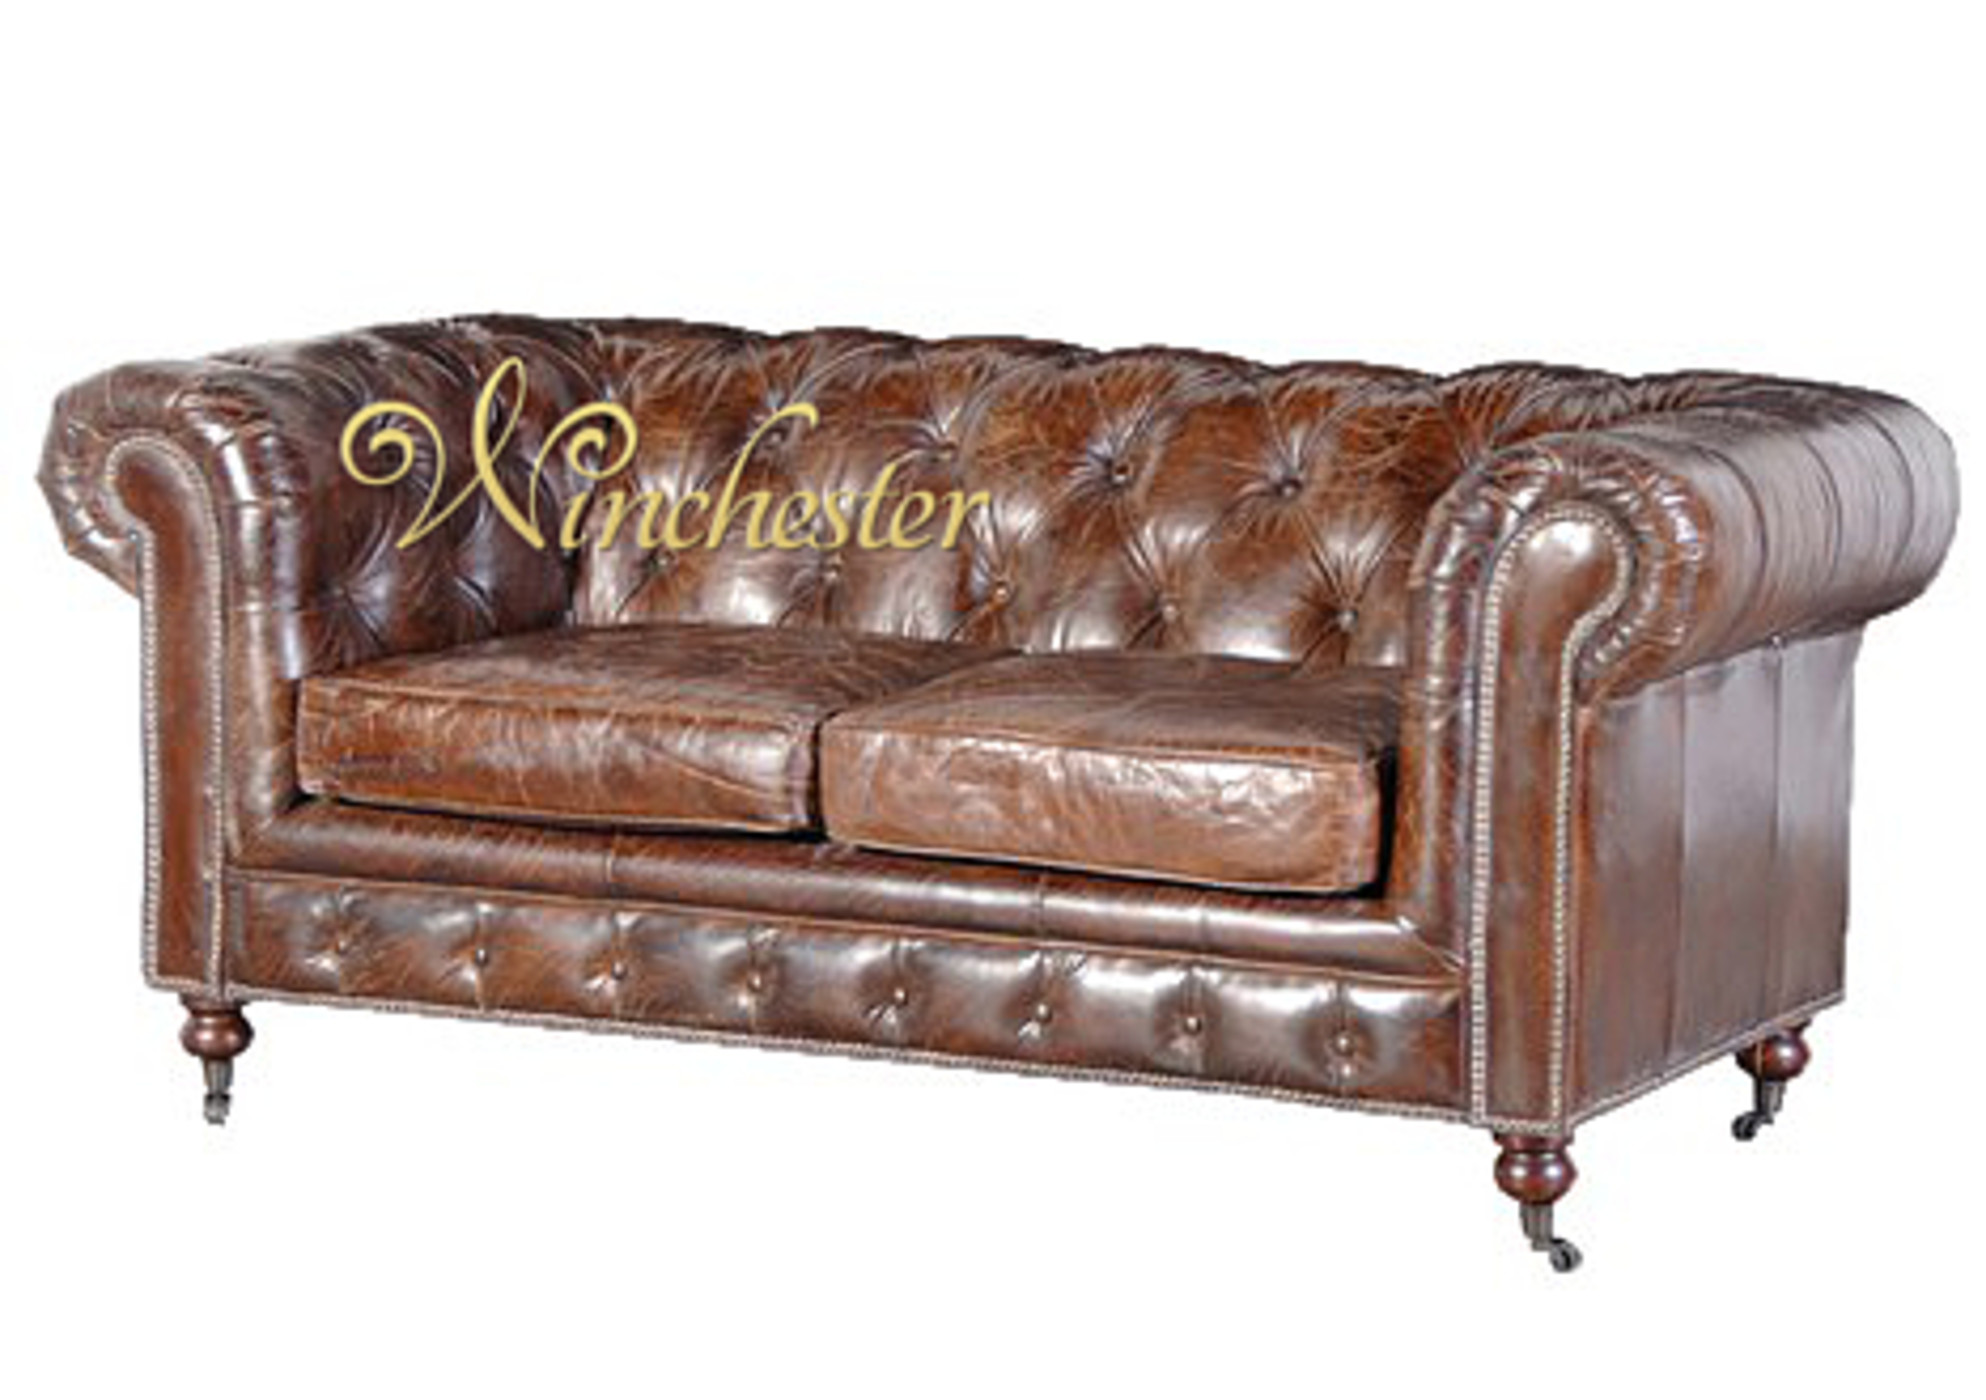 Vintage Leather Couch. Vintage Leather Couch D